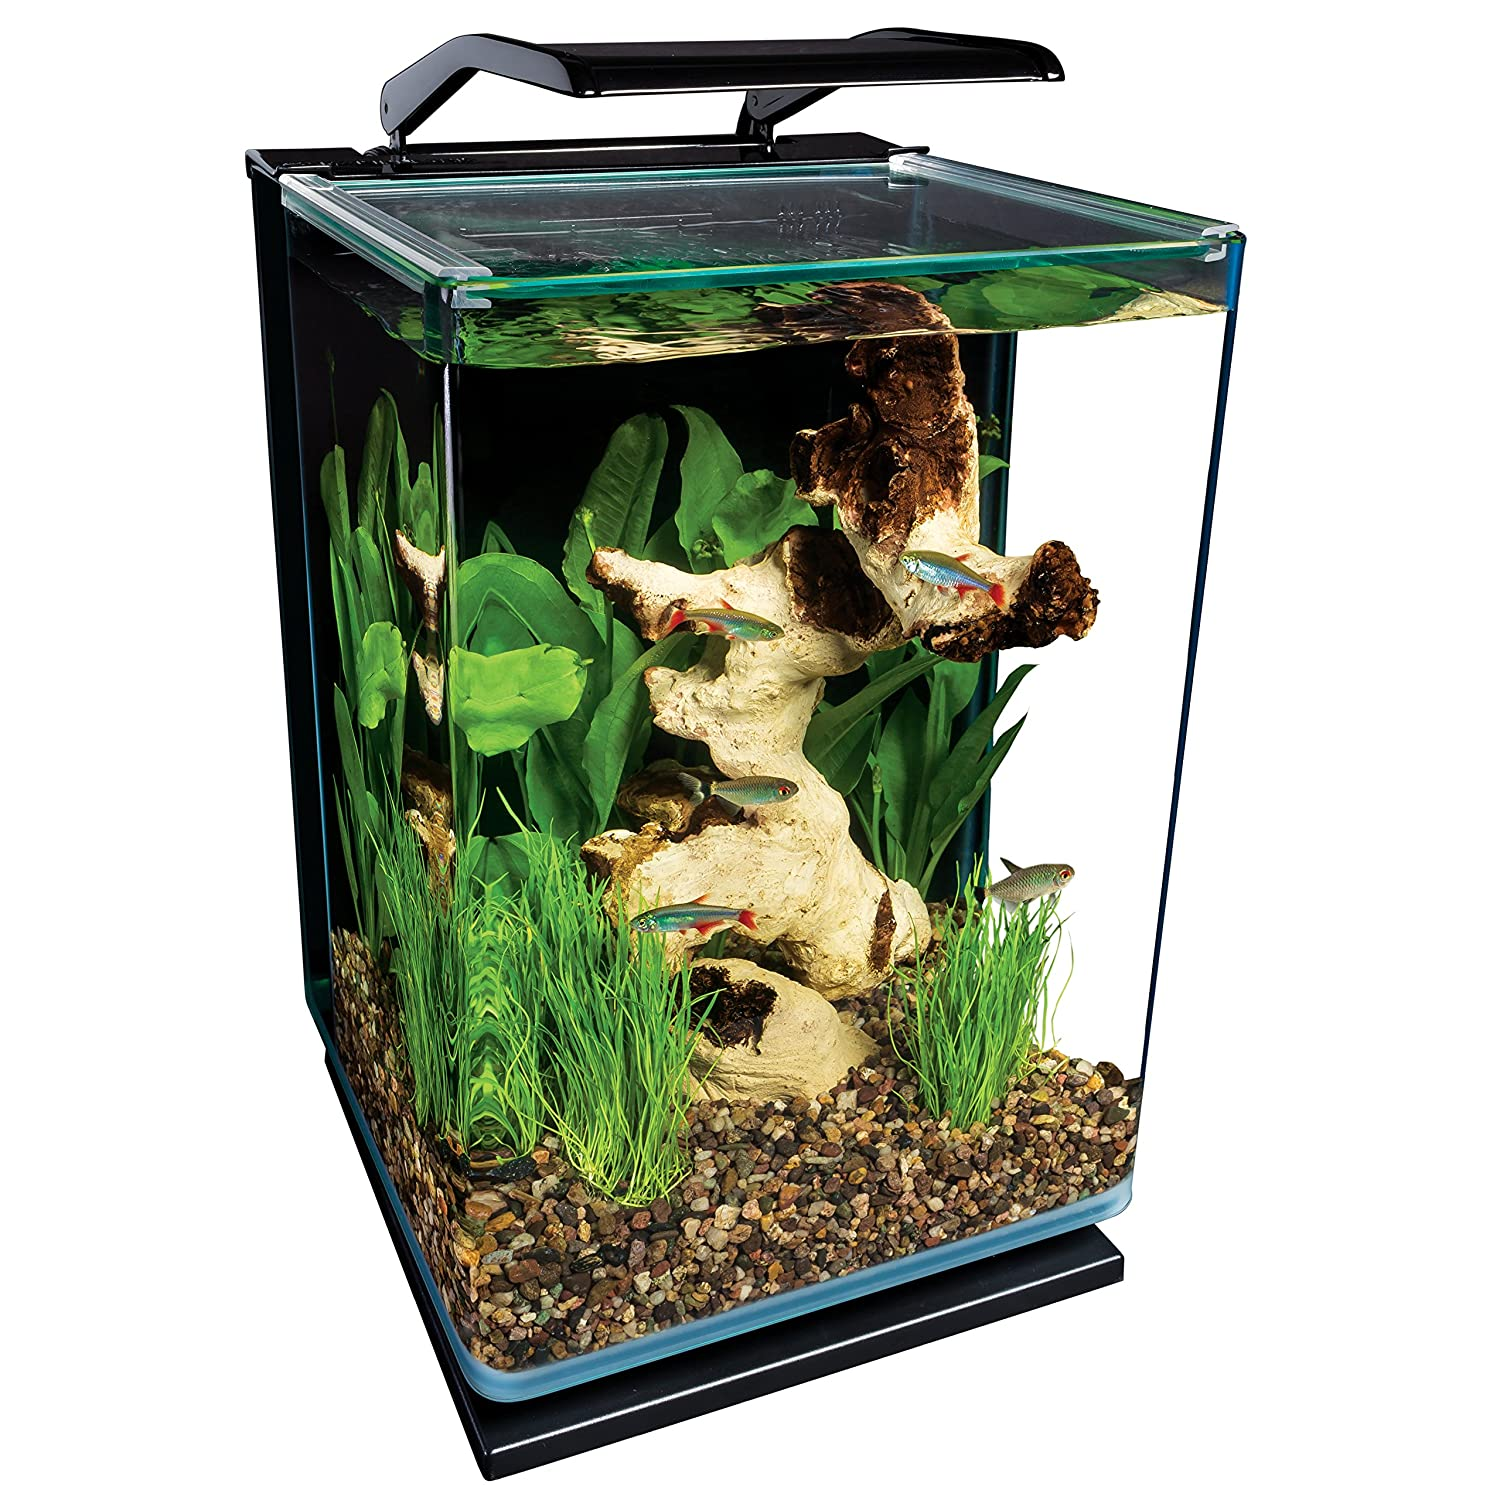 Best 5 gallon betta tank try samurai fighting fish betta for Betta fish tank with filter